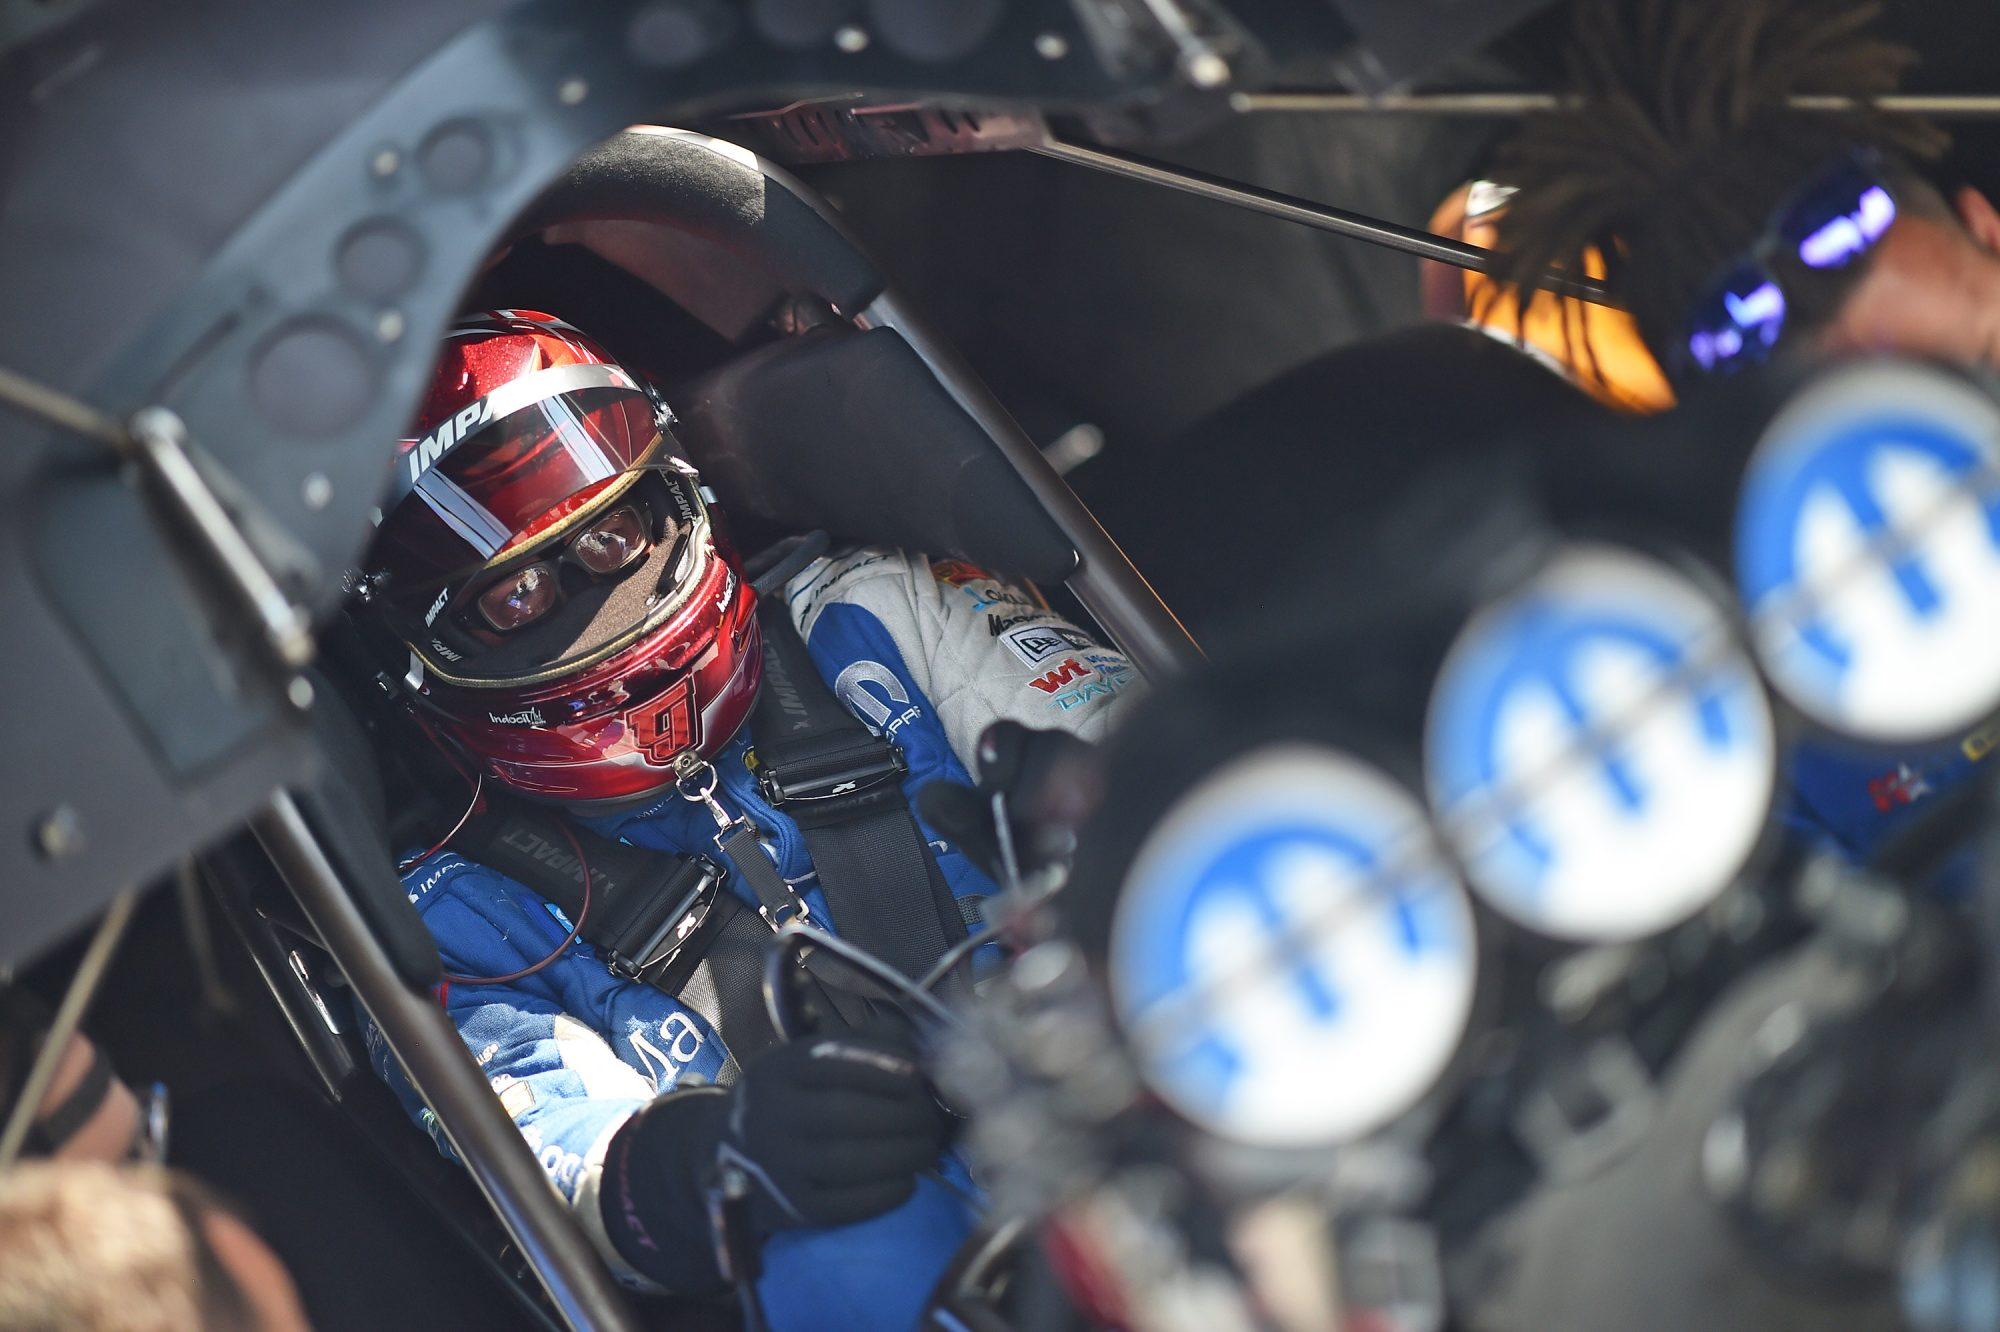 Tommy Johnson Jr sitting in his funny car getting ready to race